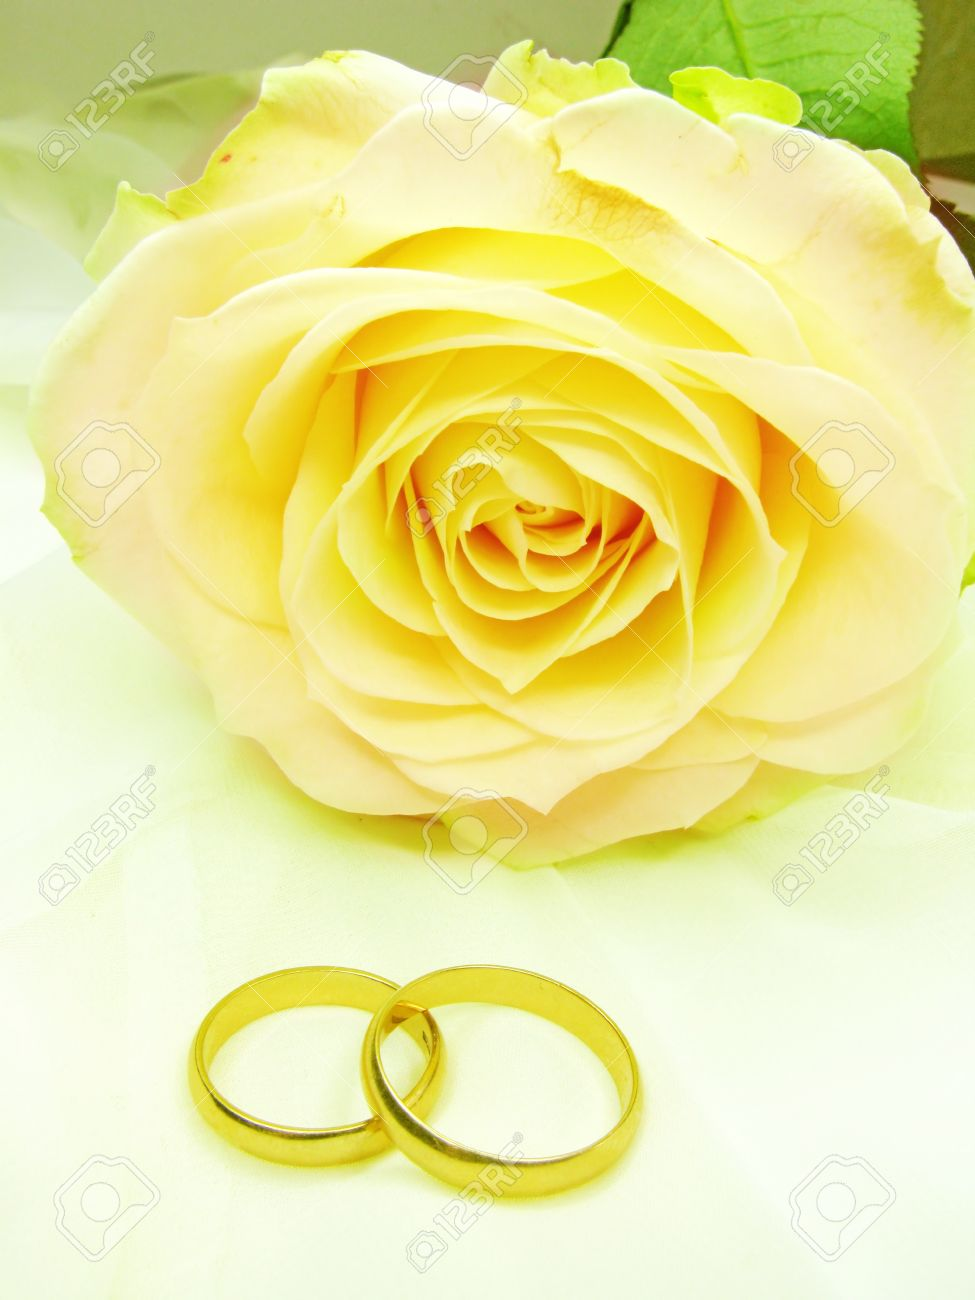 Stock Photo Yellow Rose And Wedding Rings On Satin Beige Background: Yellow Roses Wedding Rings At Reisefeber.org